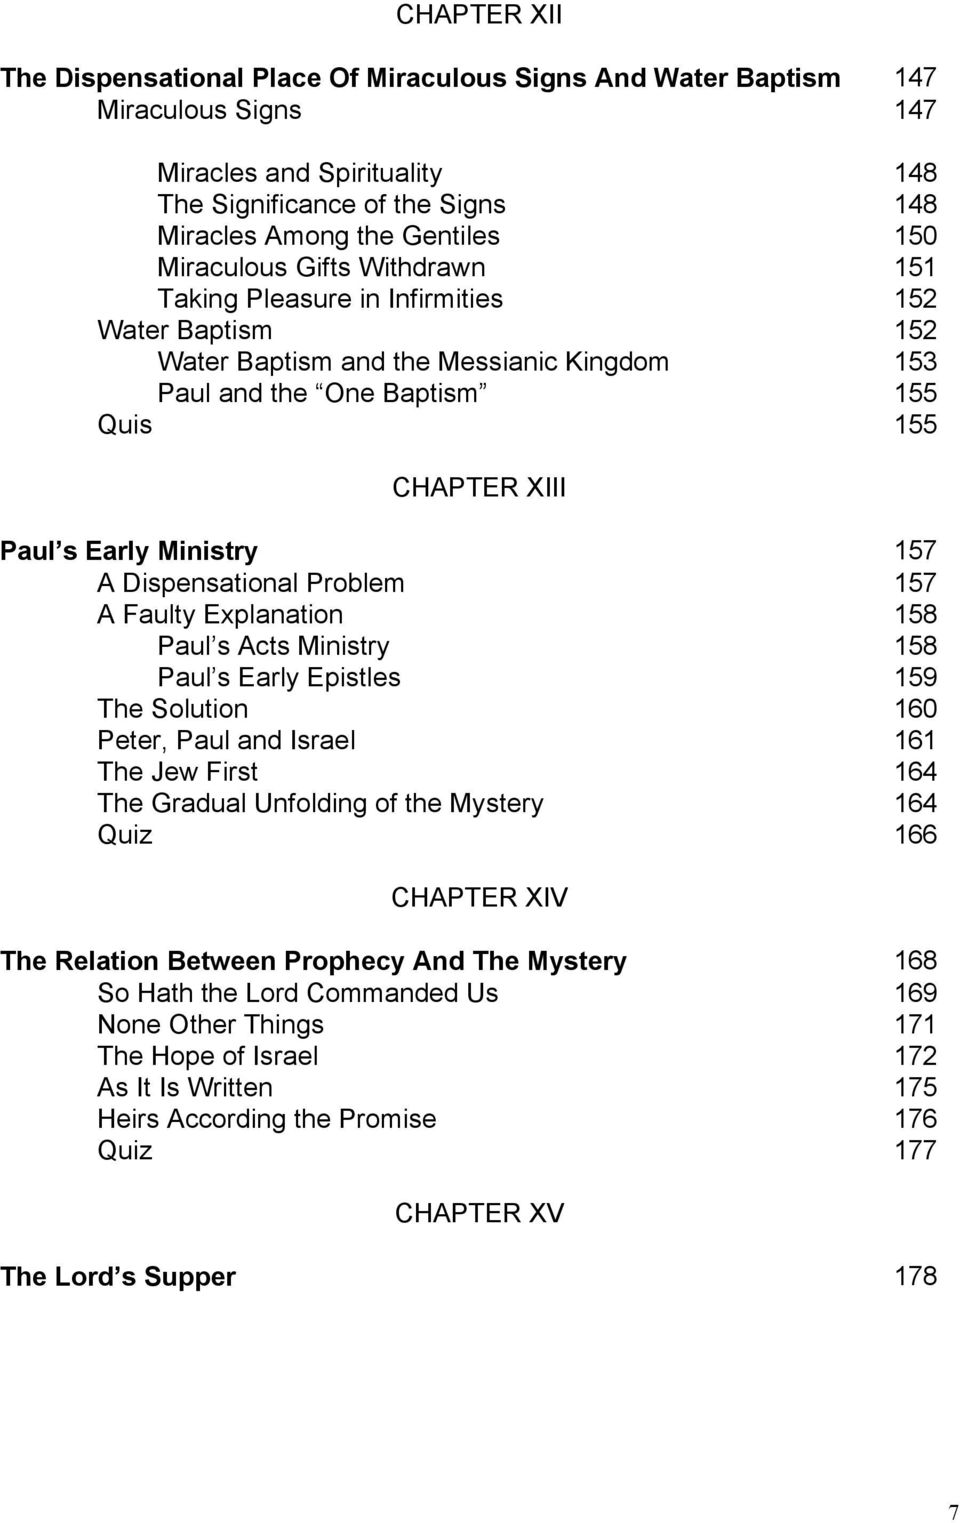 Ministry 157 A Dispensational Problem 157 A Faulty Explanation 158 Paul s Acts Ministry 158 Paul s Early Epistles 159 The Solution 160 Peter, Paul and Israel 161 The Jew First 164 The Gradual